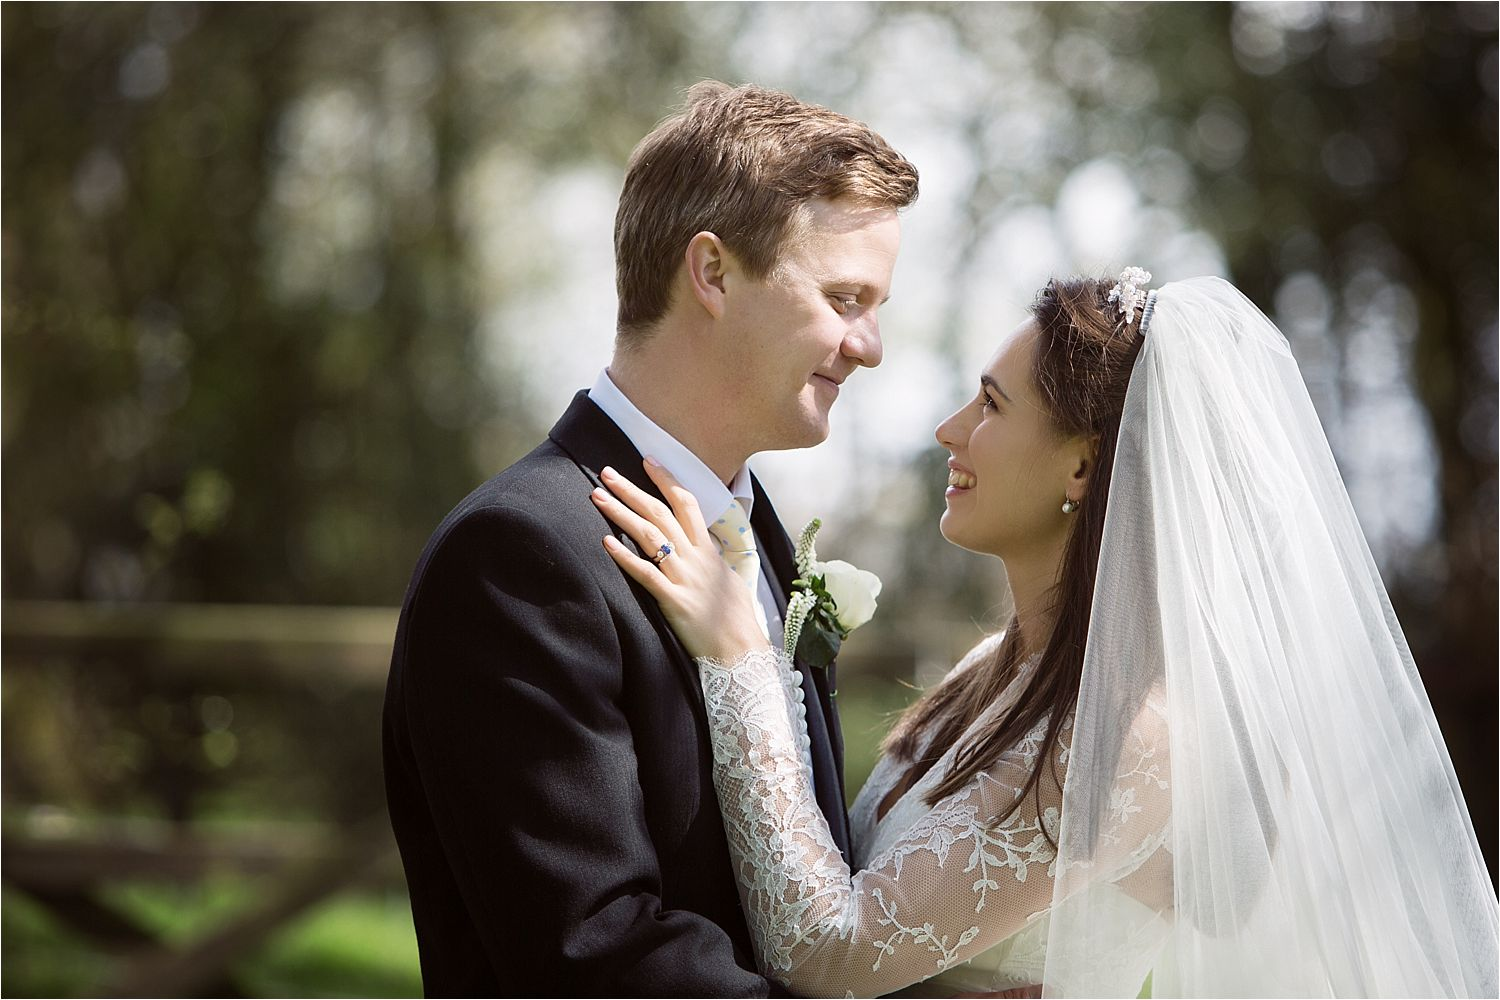 Bride and groom share an intimate moment together before their Hilltop Country House wedding reception